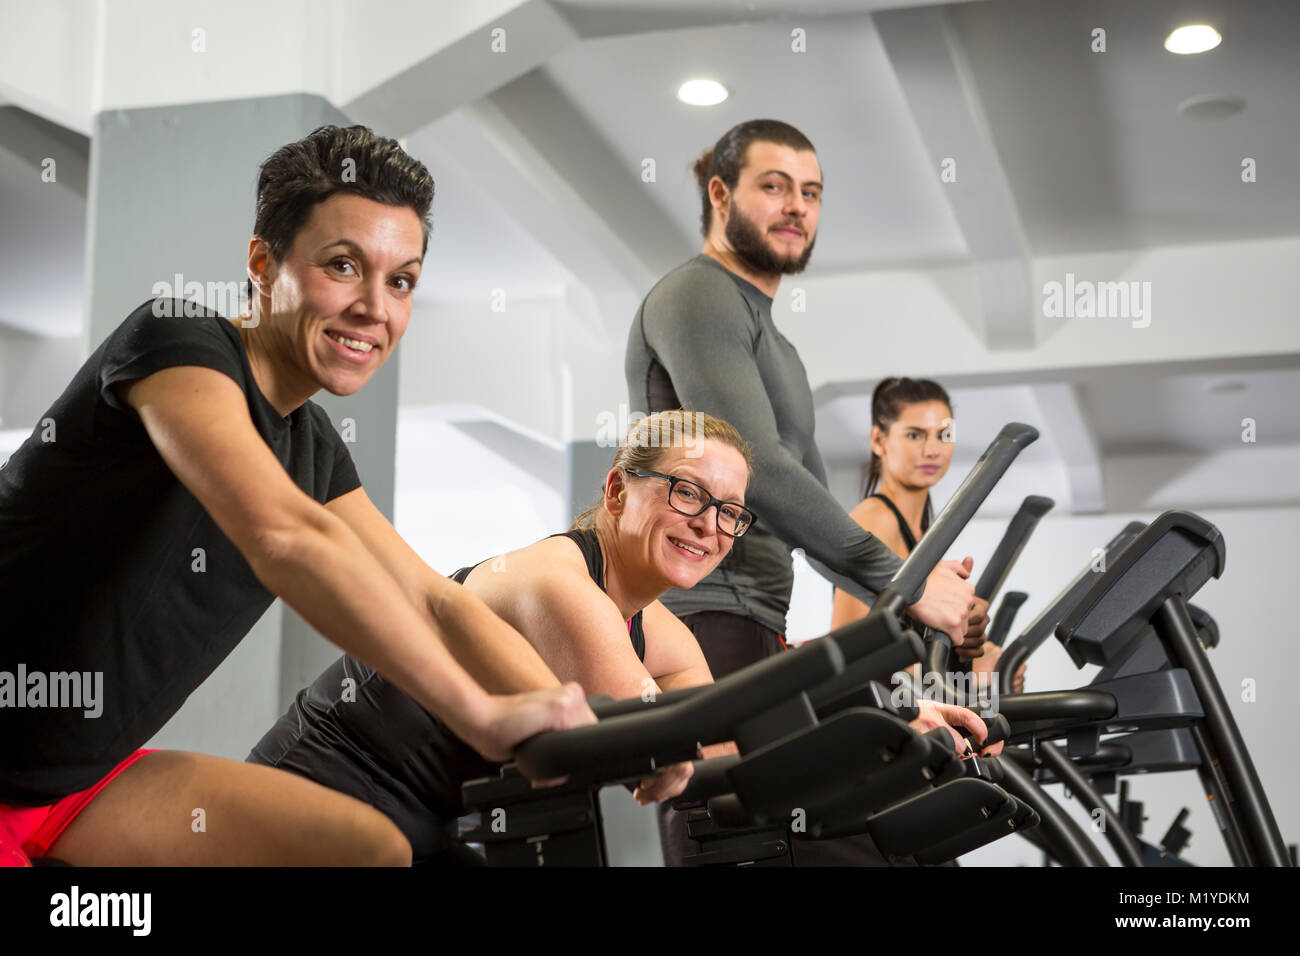 Three women and one man training at a gym in cardio machines. They all have happy expressions. - Stock Image